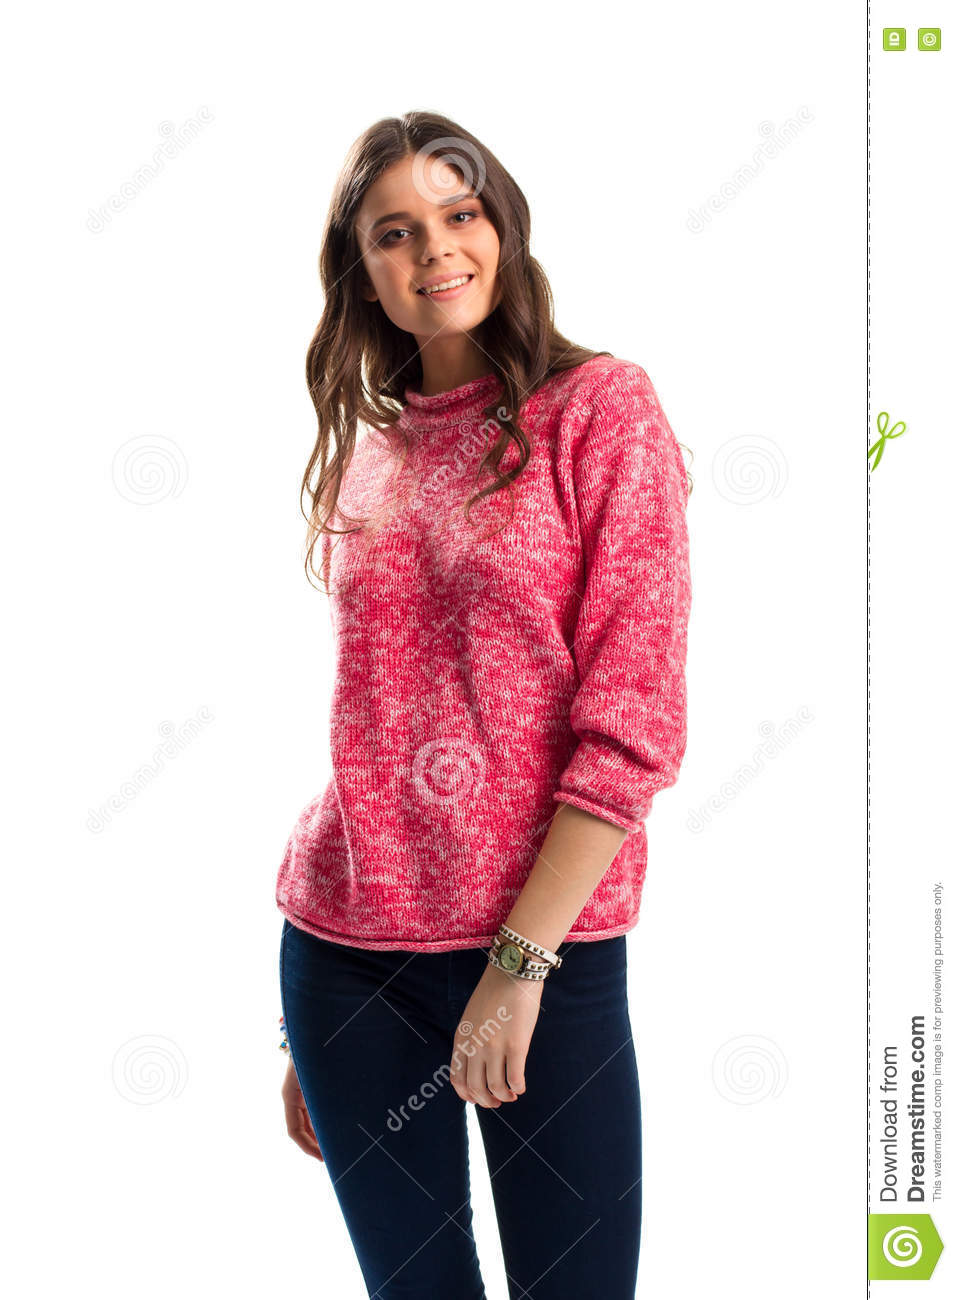 Girl In Pink Sweater Smiling. Stock Image - Image: 74855681